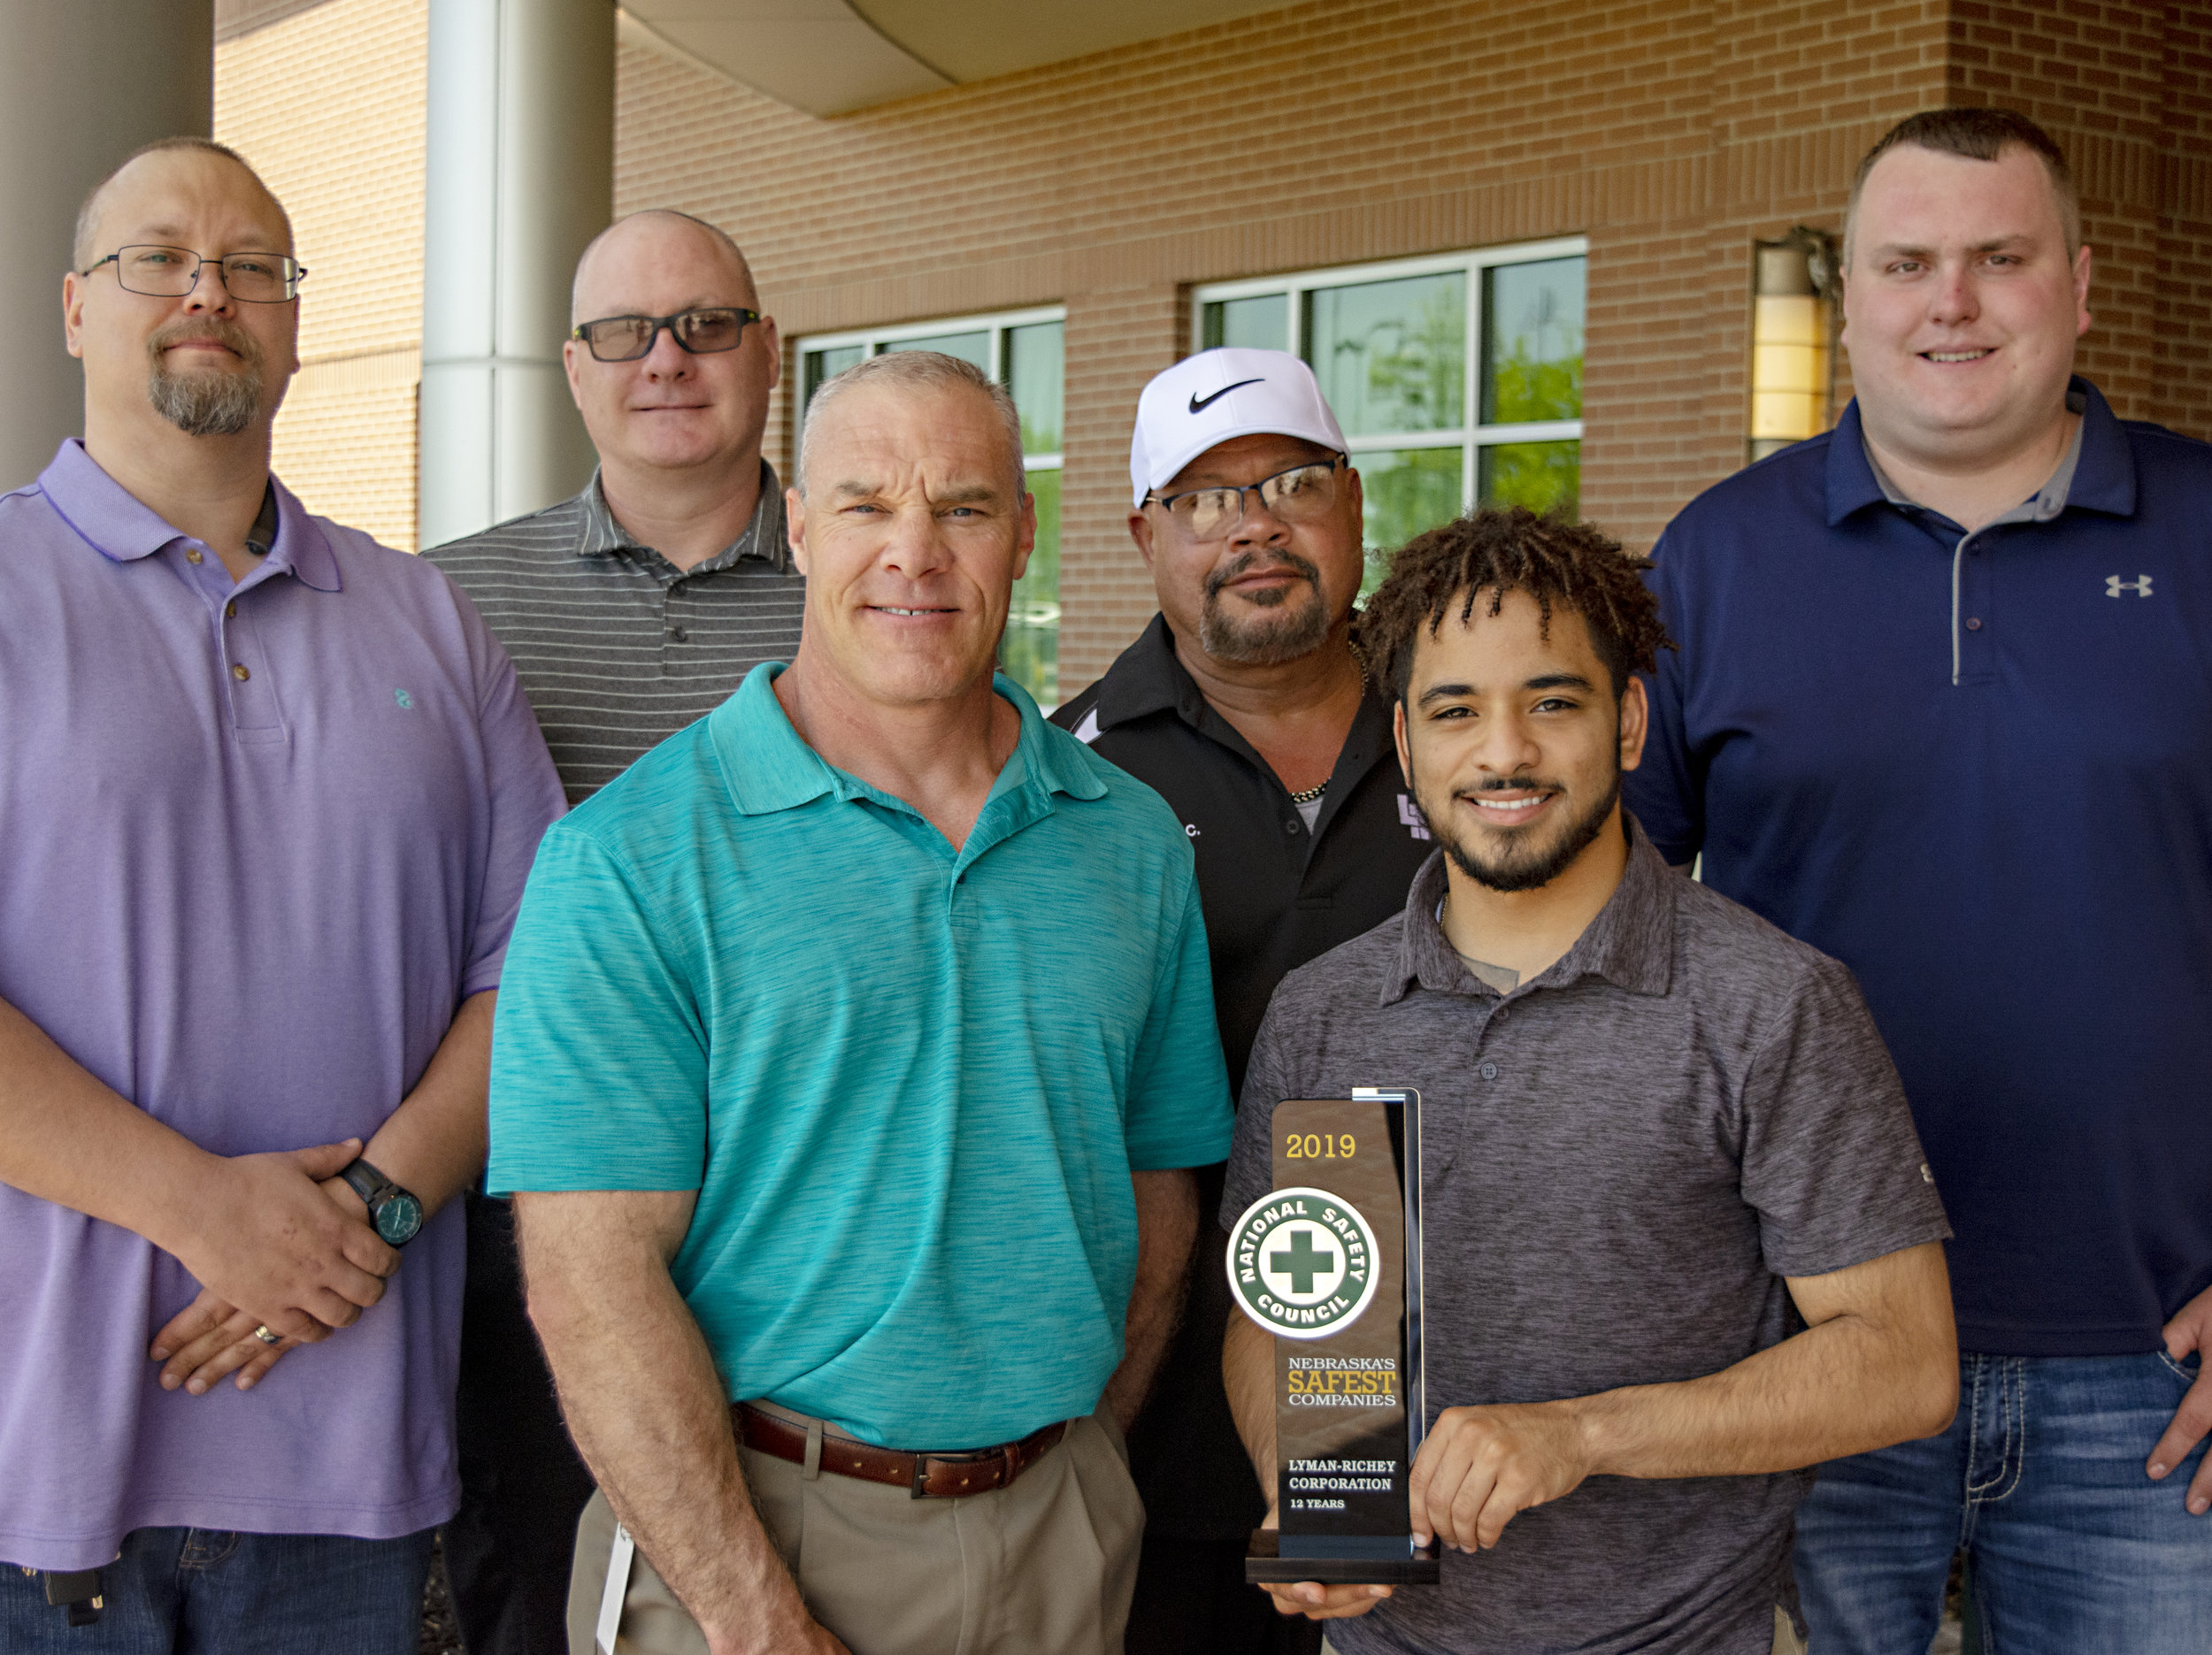 Field Safety Specialist Shawn Cassidy, Safety Director Allen Myers, Recruiter Rye Roberts, Safety Administrator George Claxton, Field Safety Specialist Dom Williams, and Field Safety Specialist Peyton Connelly accepted Lyman-Richey Corporation's Safest Company Award on May 15, 2019.